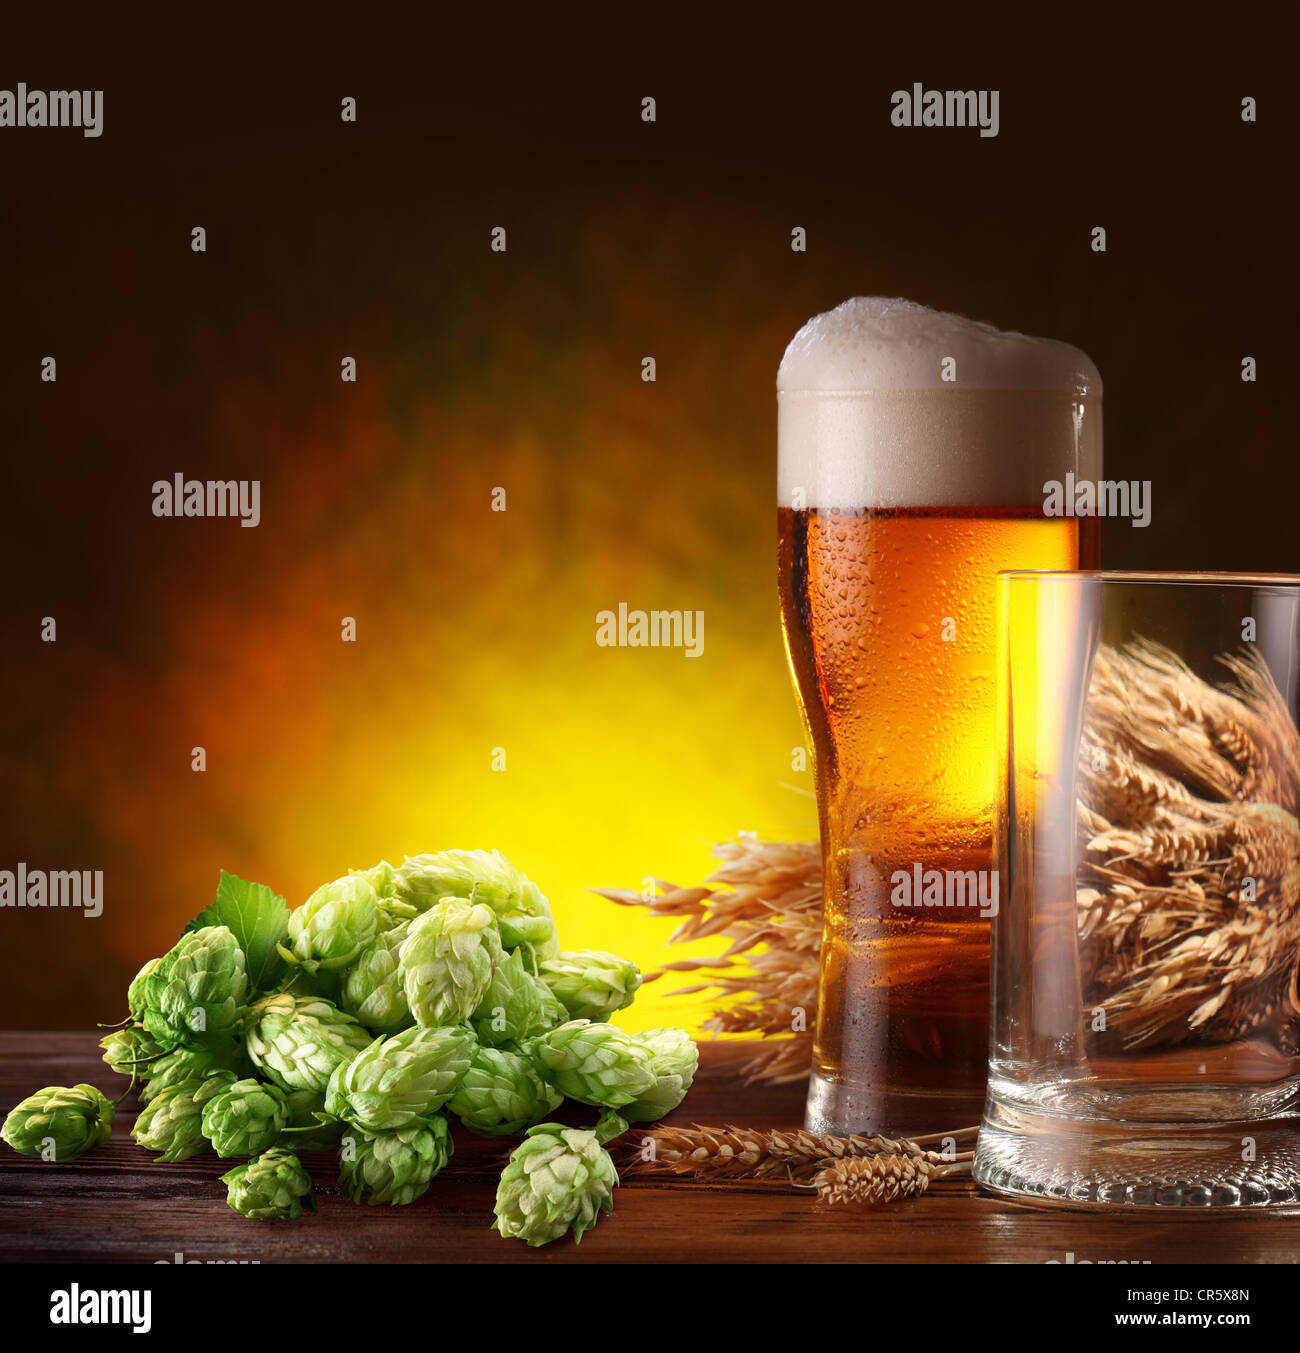 Still life with a keg of beer and hops. - Stock Image